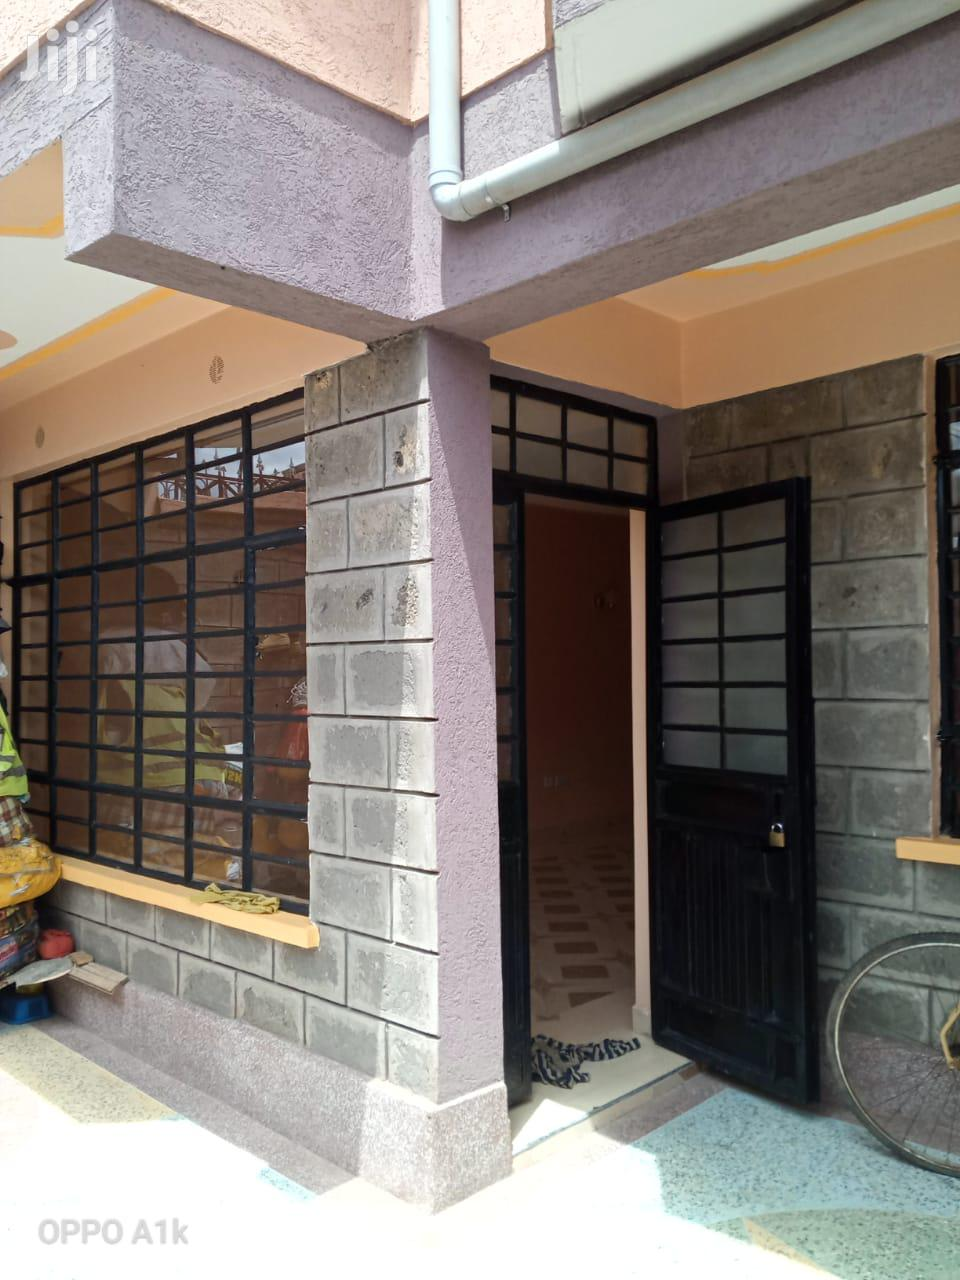 4bedroom House for Sale | Houses & Apartments For Sale for sale in Greenspan, Donholm, Kenya